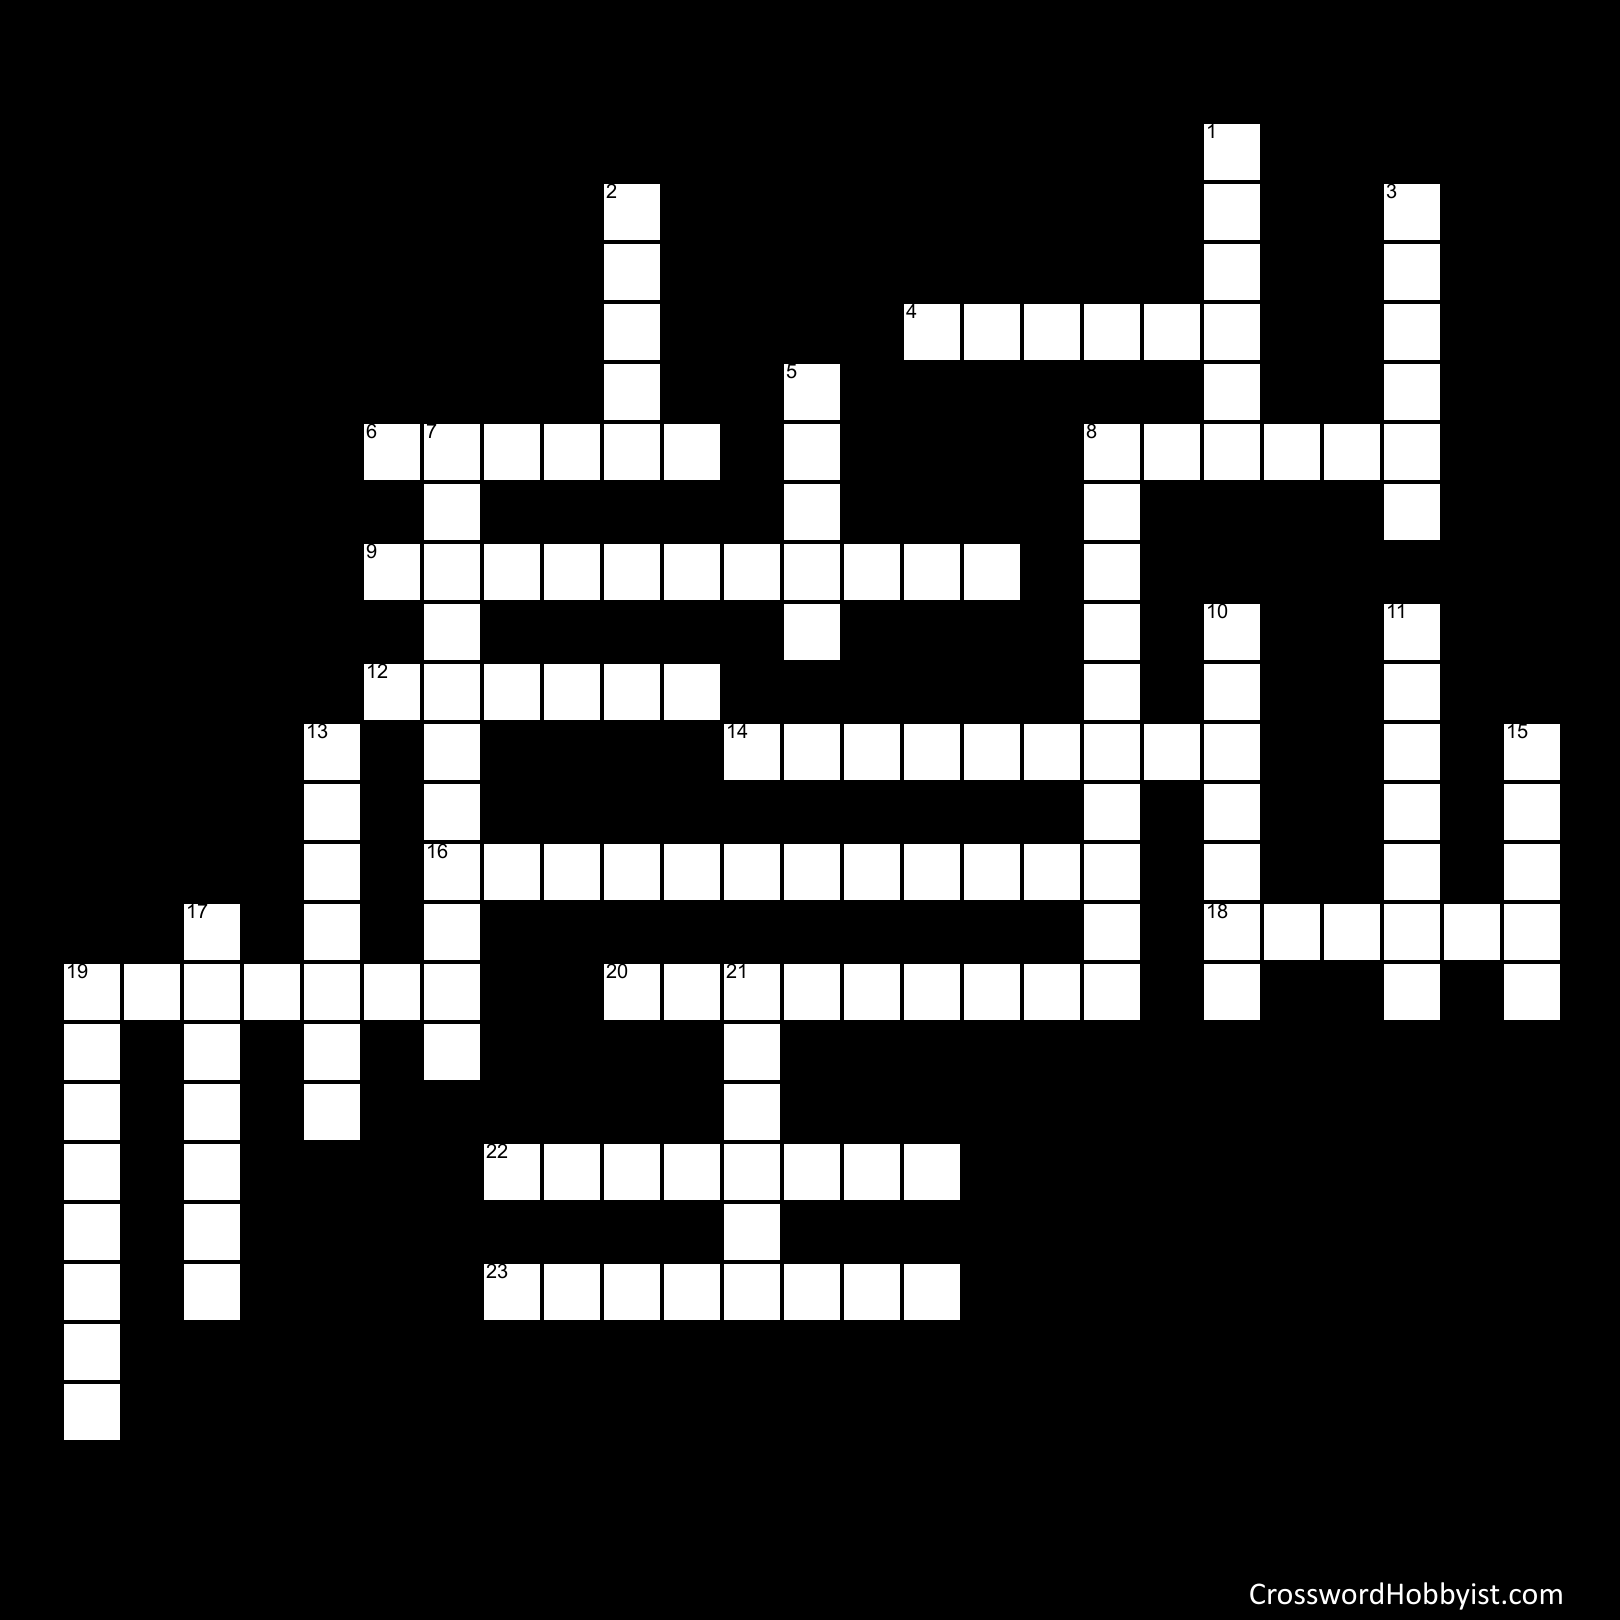 Harry Potter and the Chamber of Secrets - Crossword Puzzle